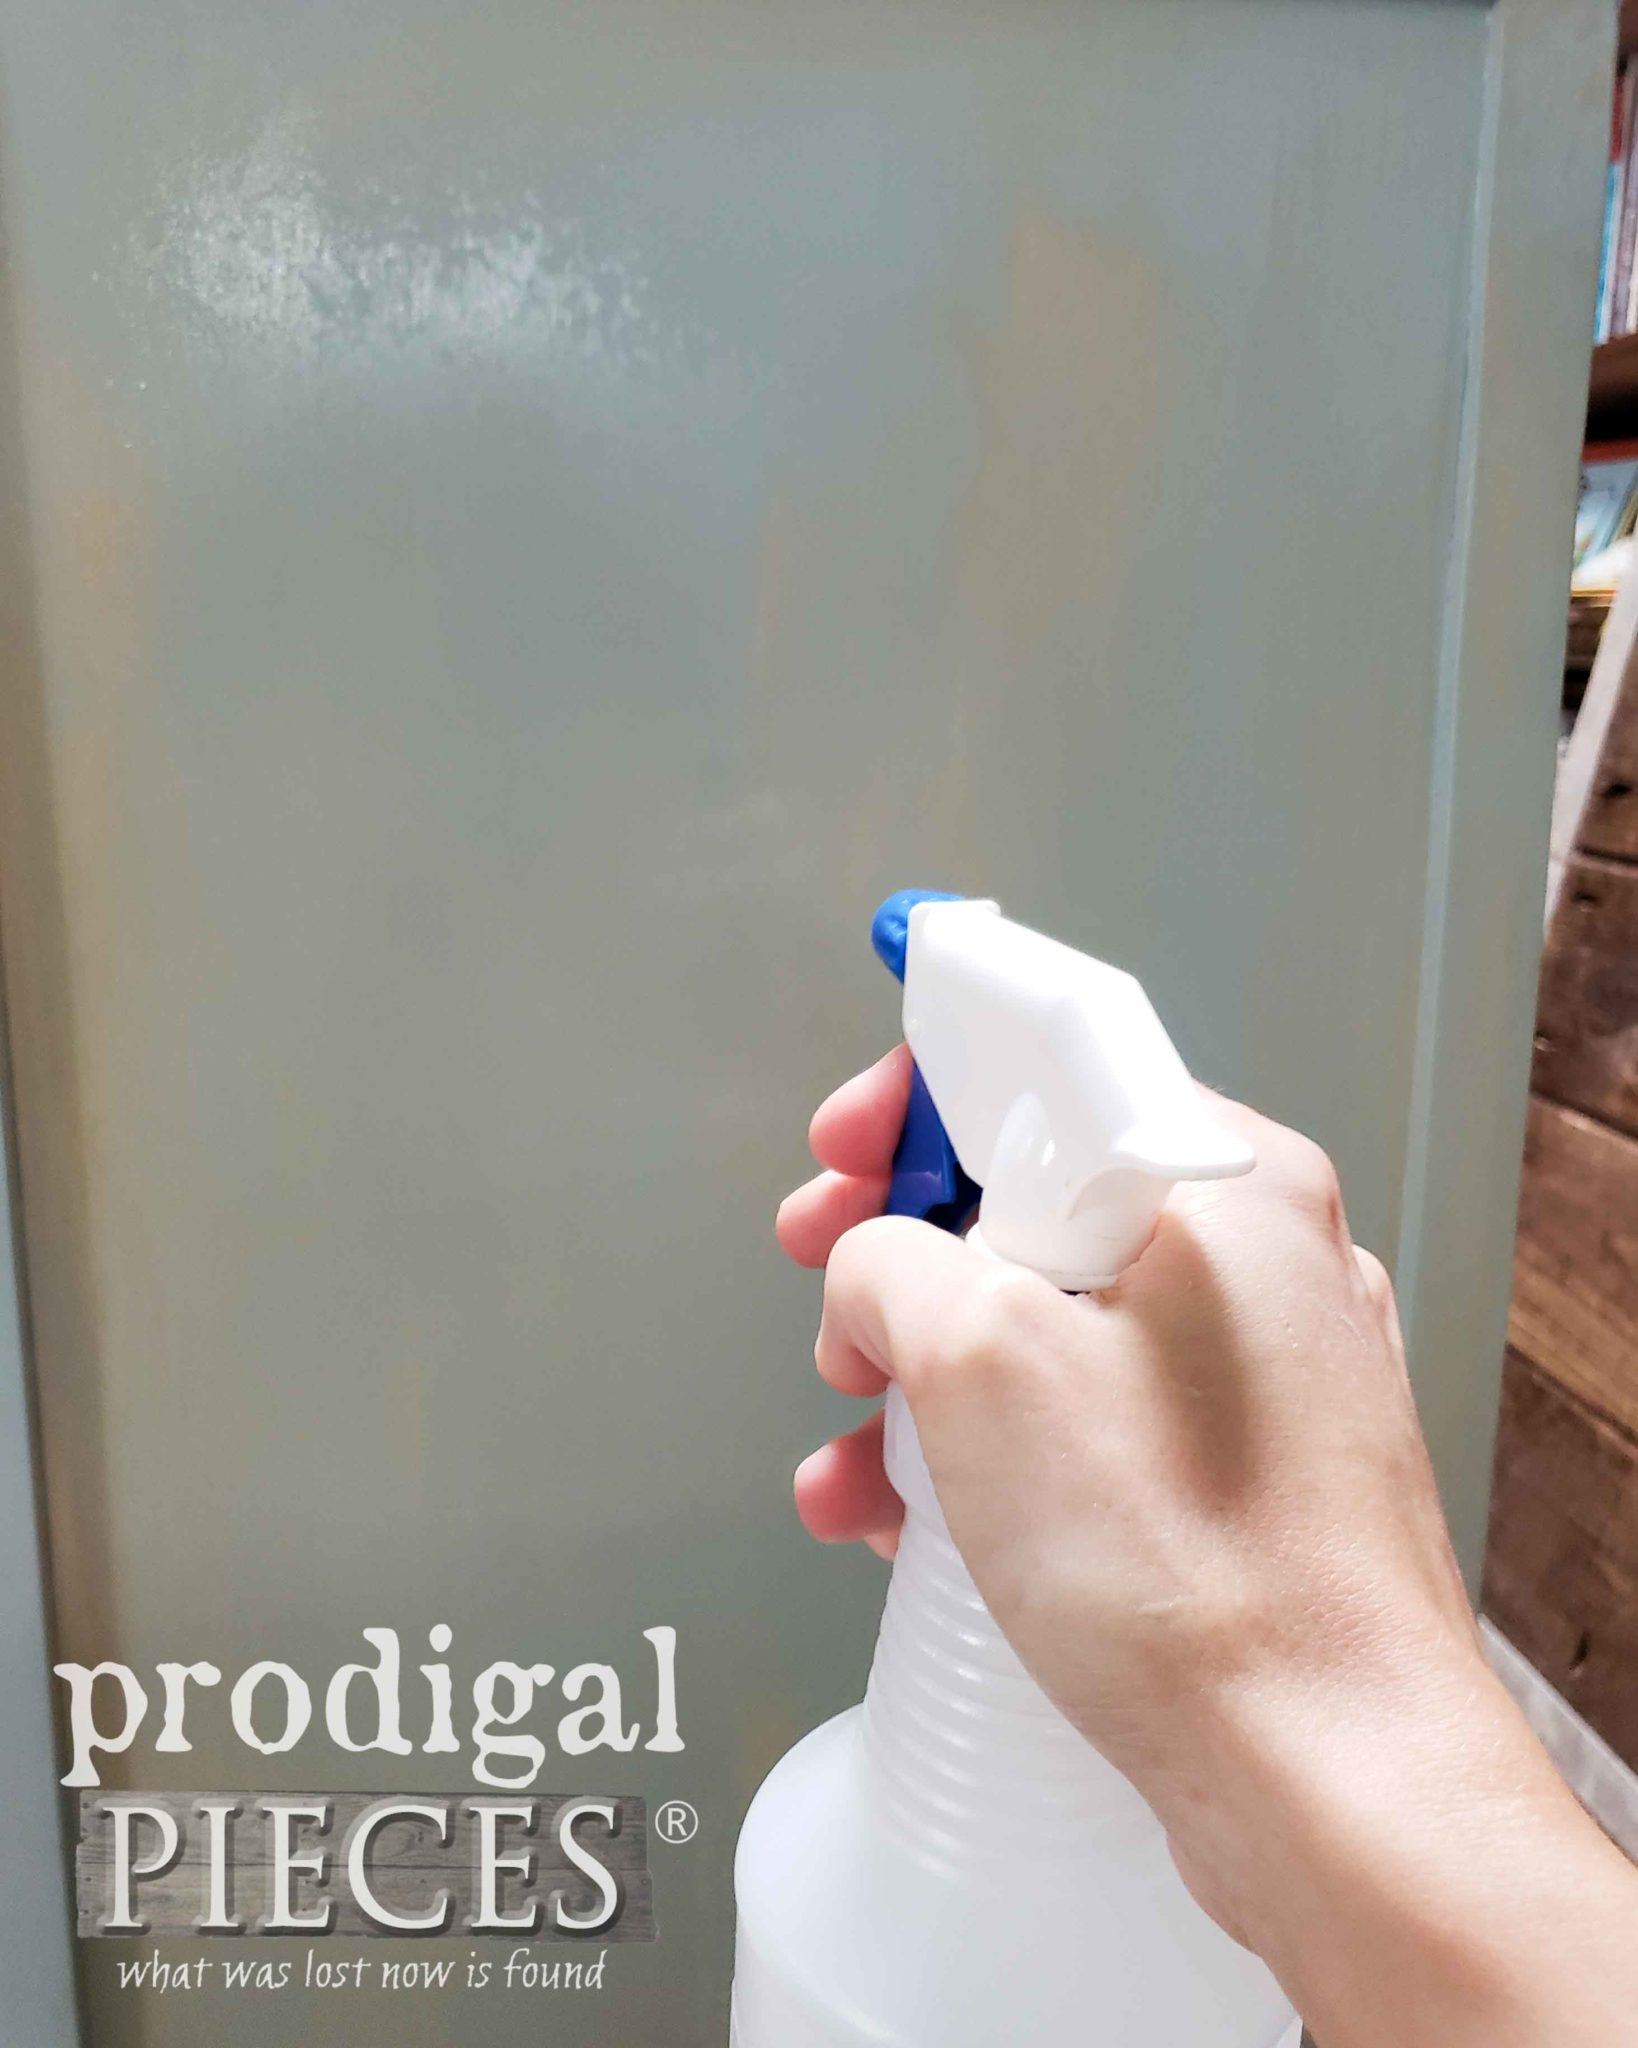 Misting Dresser Paint for Frottage Technique by Prodigal Pieces | prodigalpieces.com